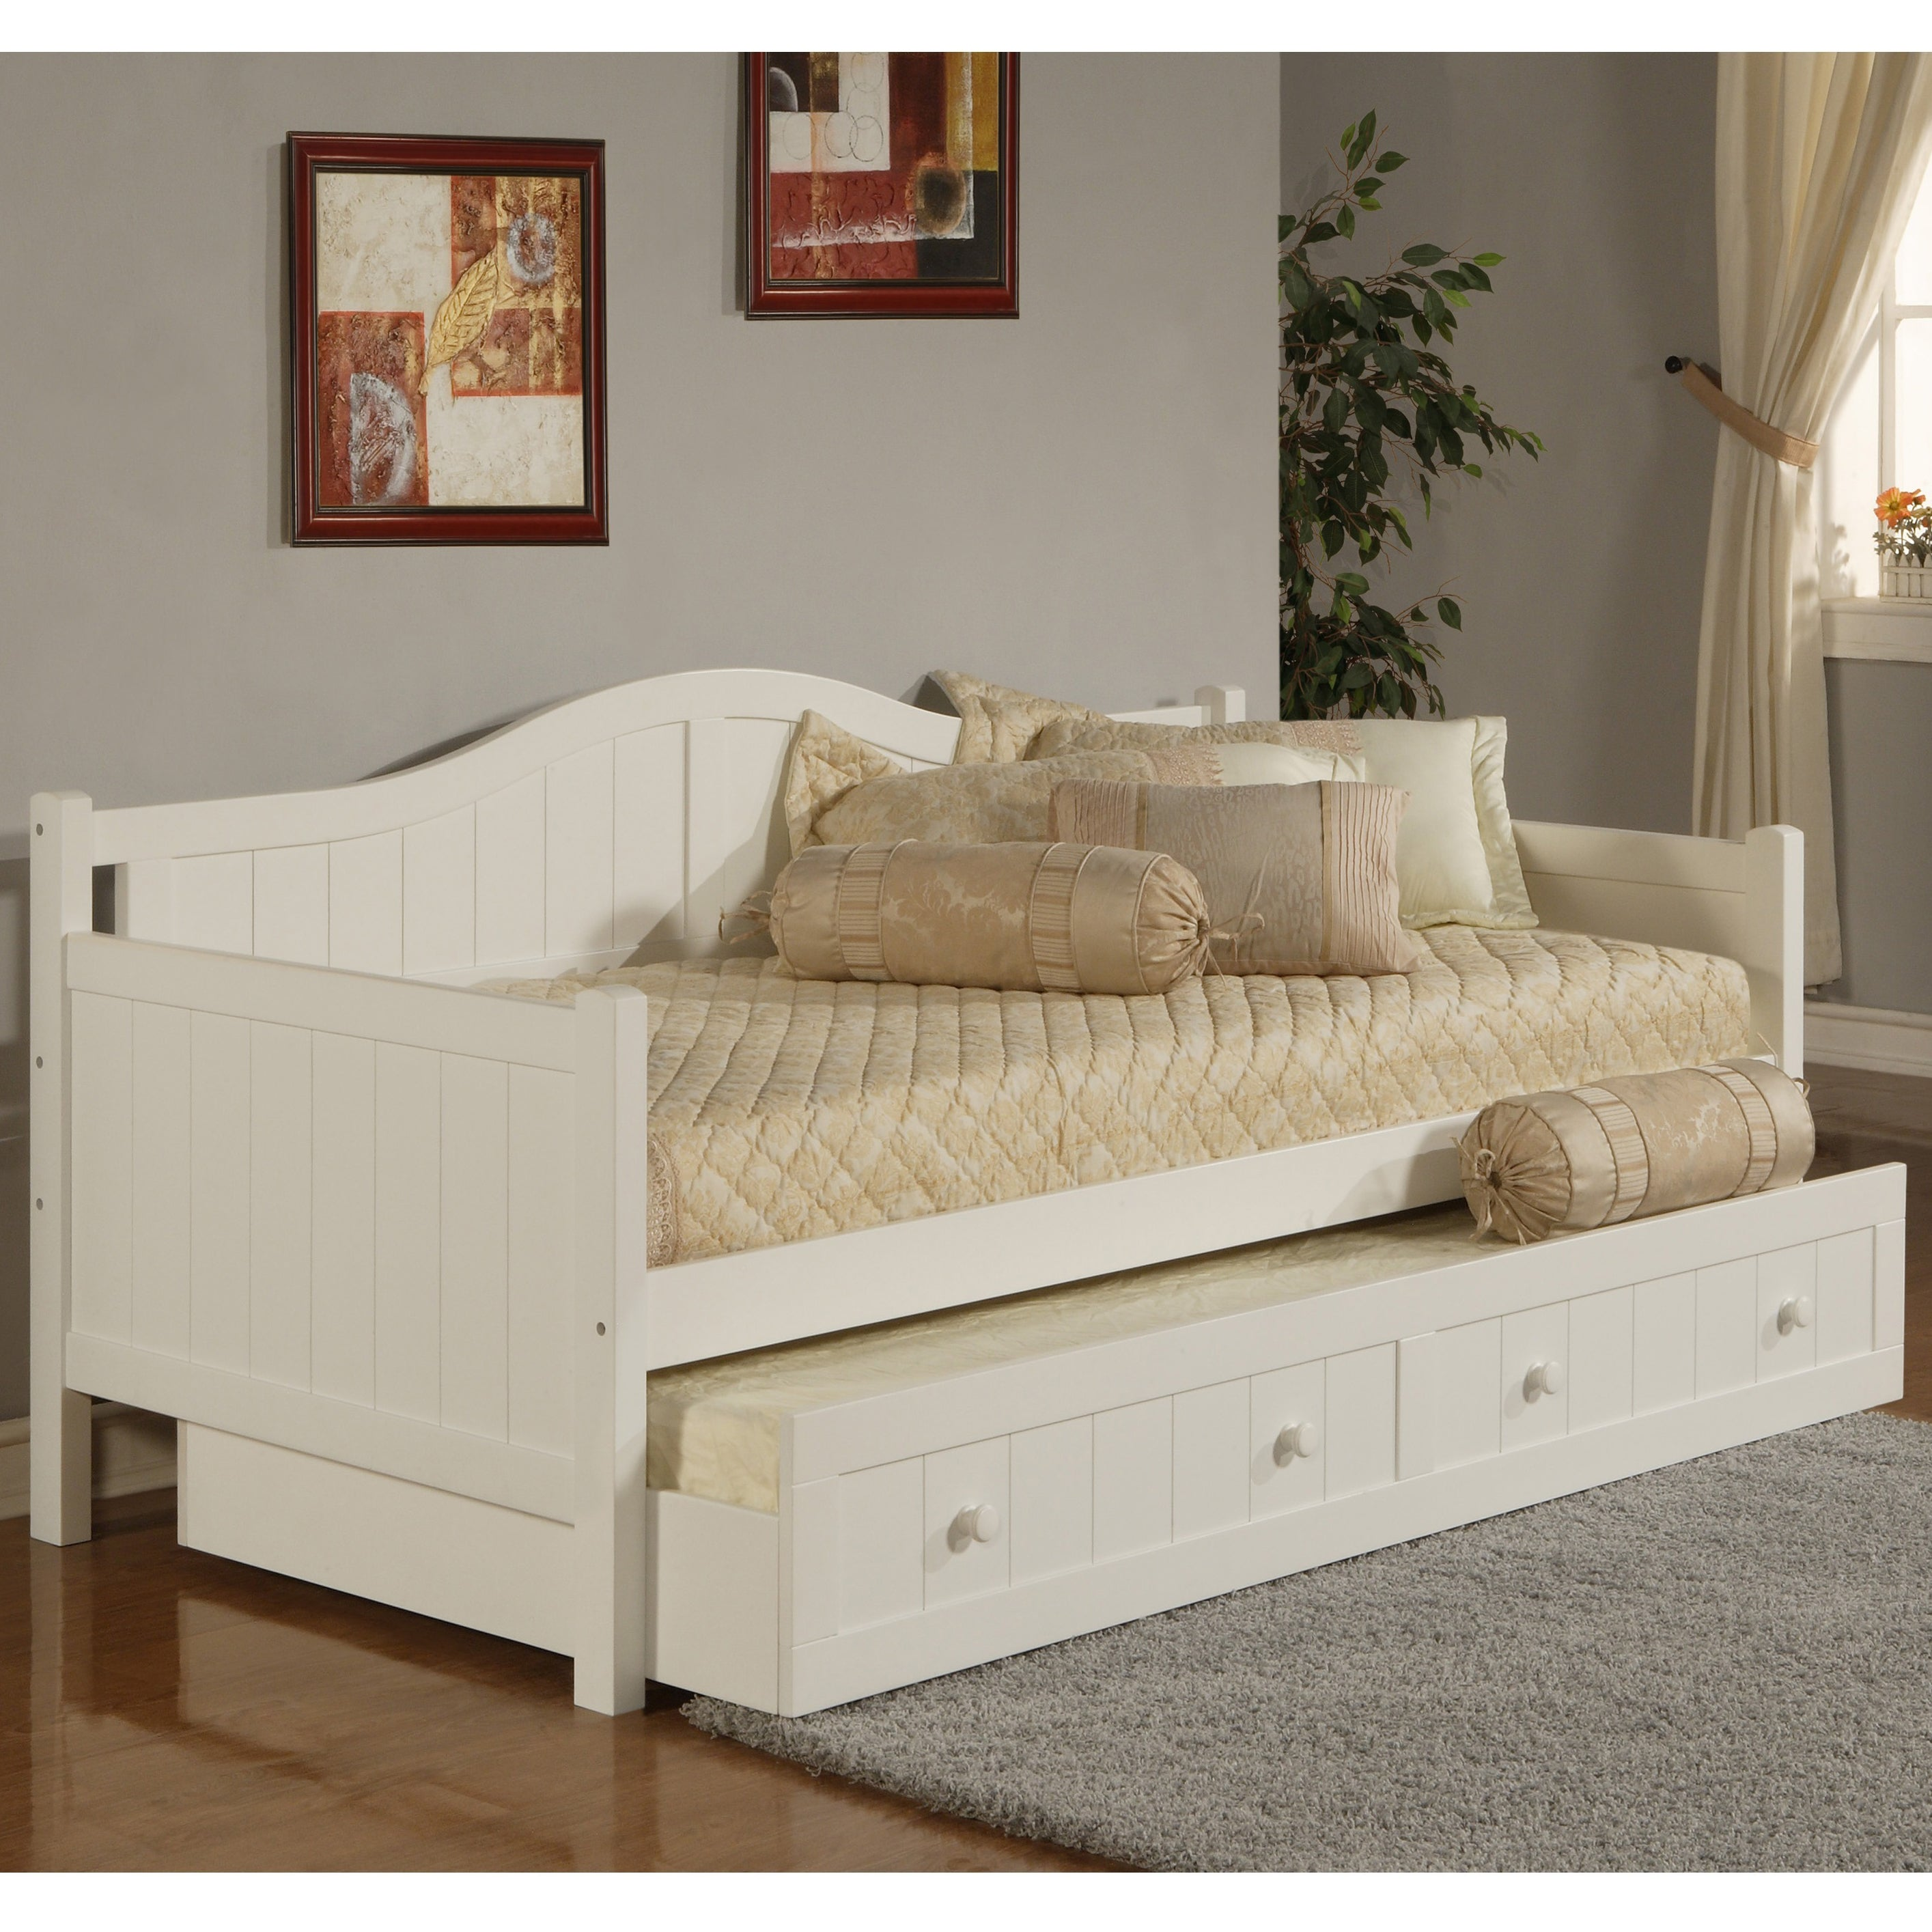 - Shop Hillsdale Furniture Staci White Daybed - Overstock - 10978106